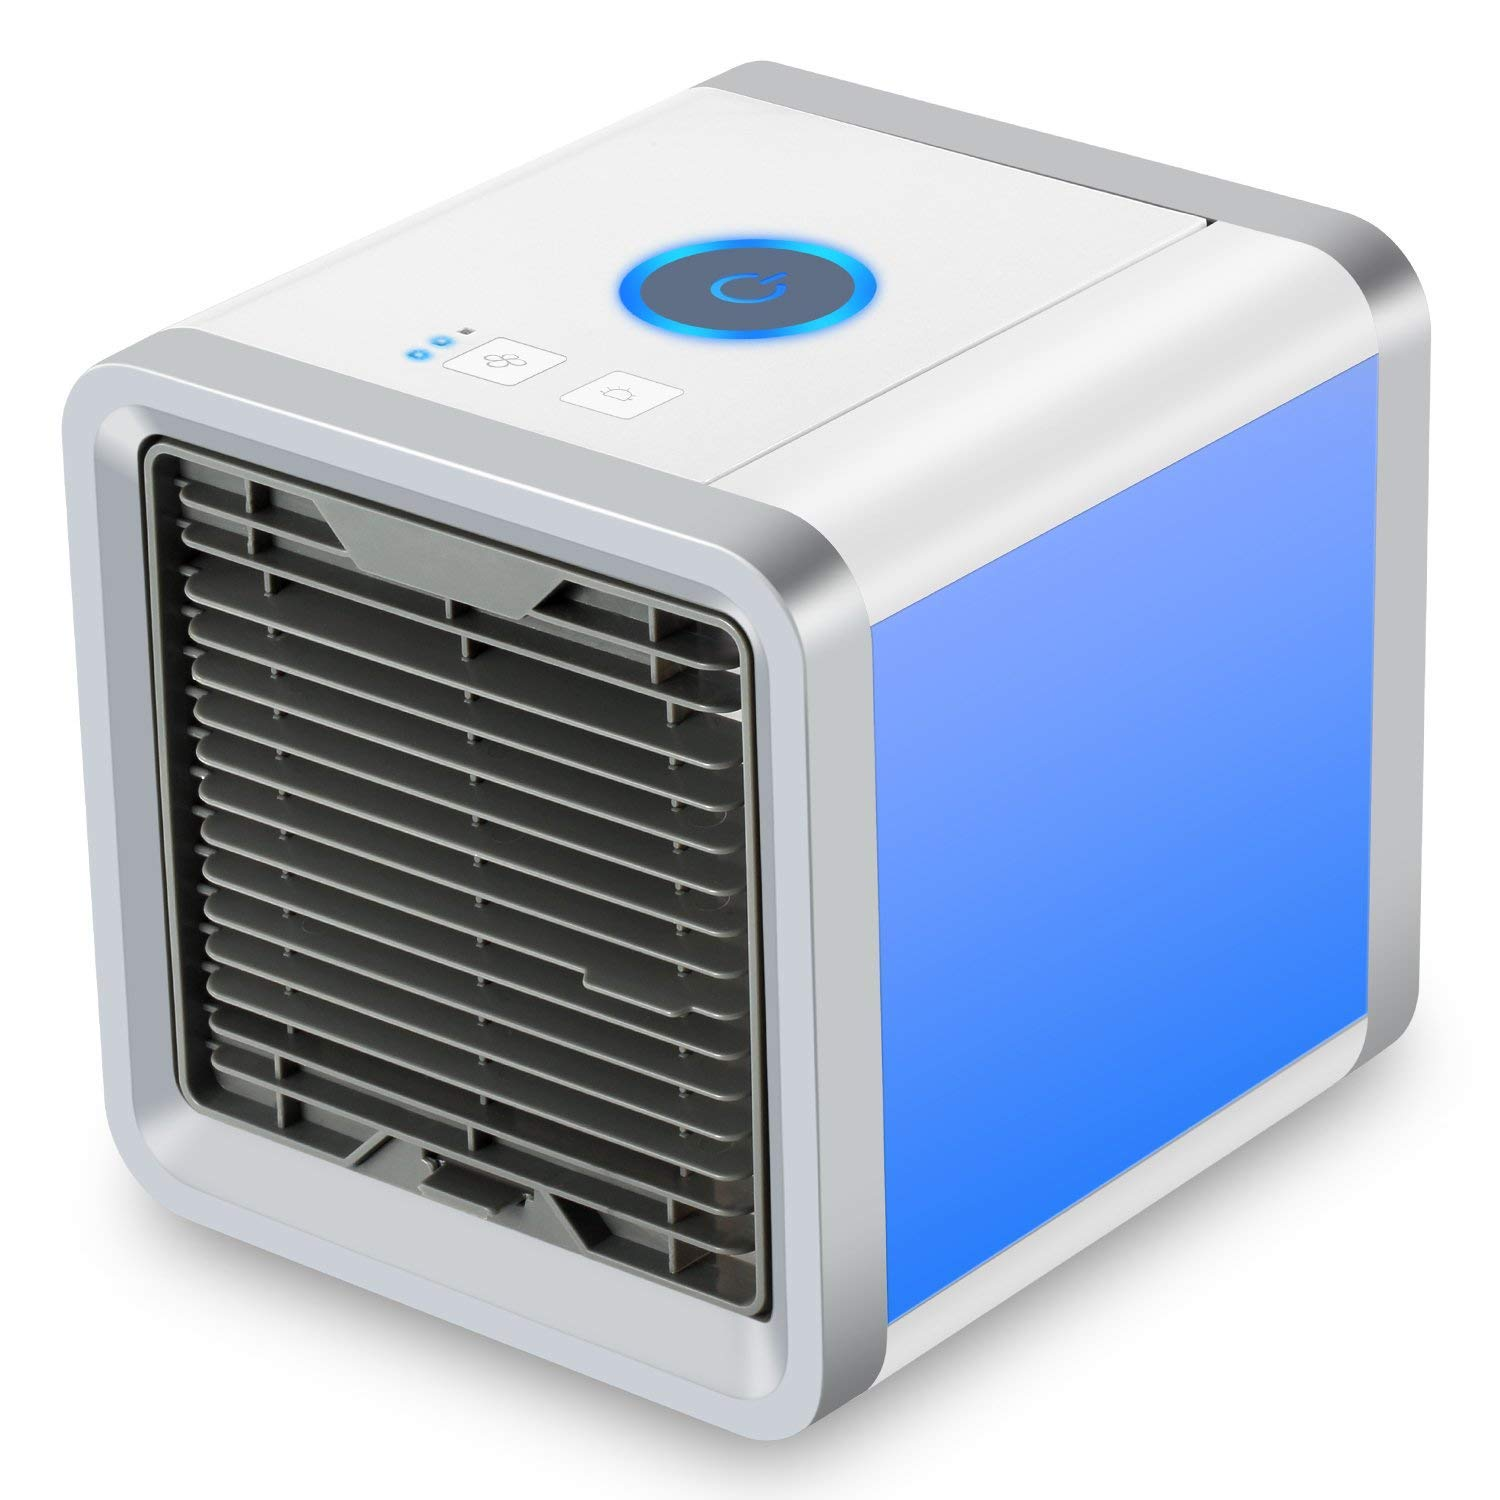 SENDOW Mini Air Cooler USB Climatizzatore da Scrivania Umidificatore Depuratore con 7 Colori LED